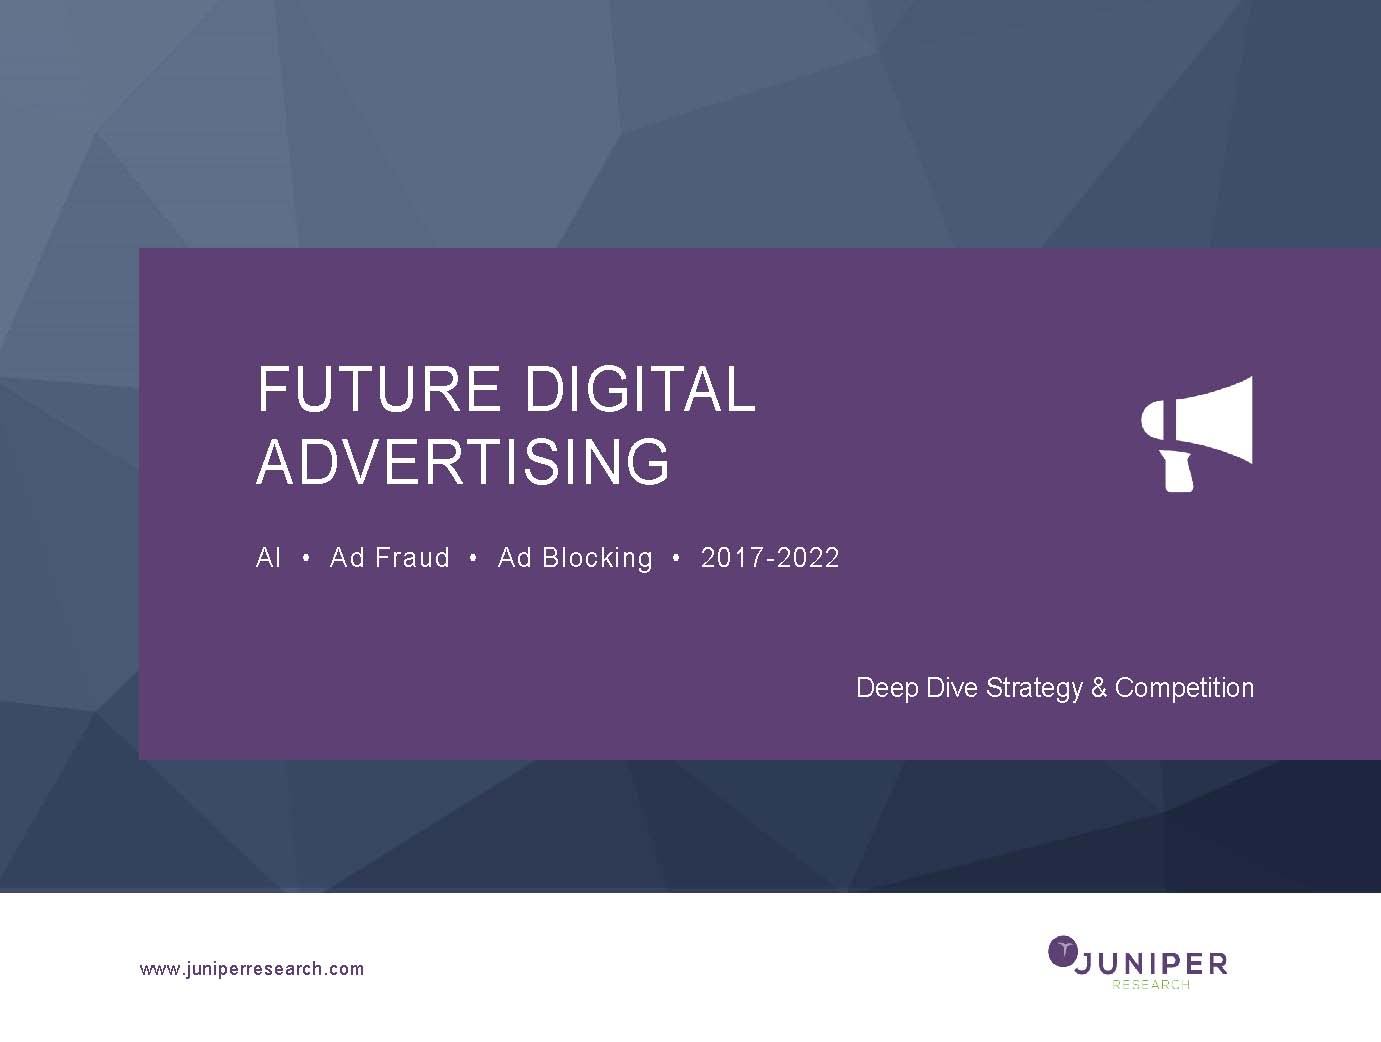 Future Digital Advertising: Deep Dive Strategy & Competition 2017-2022